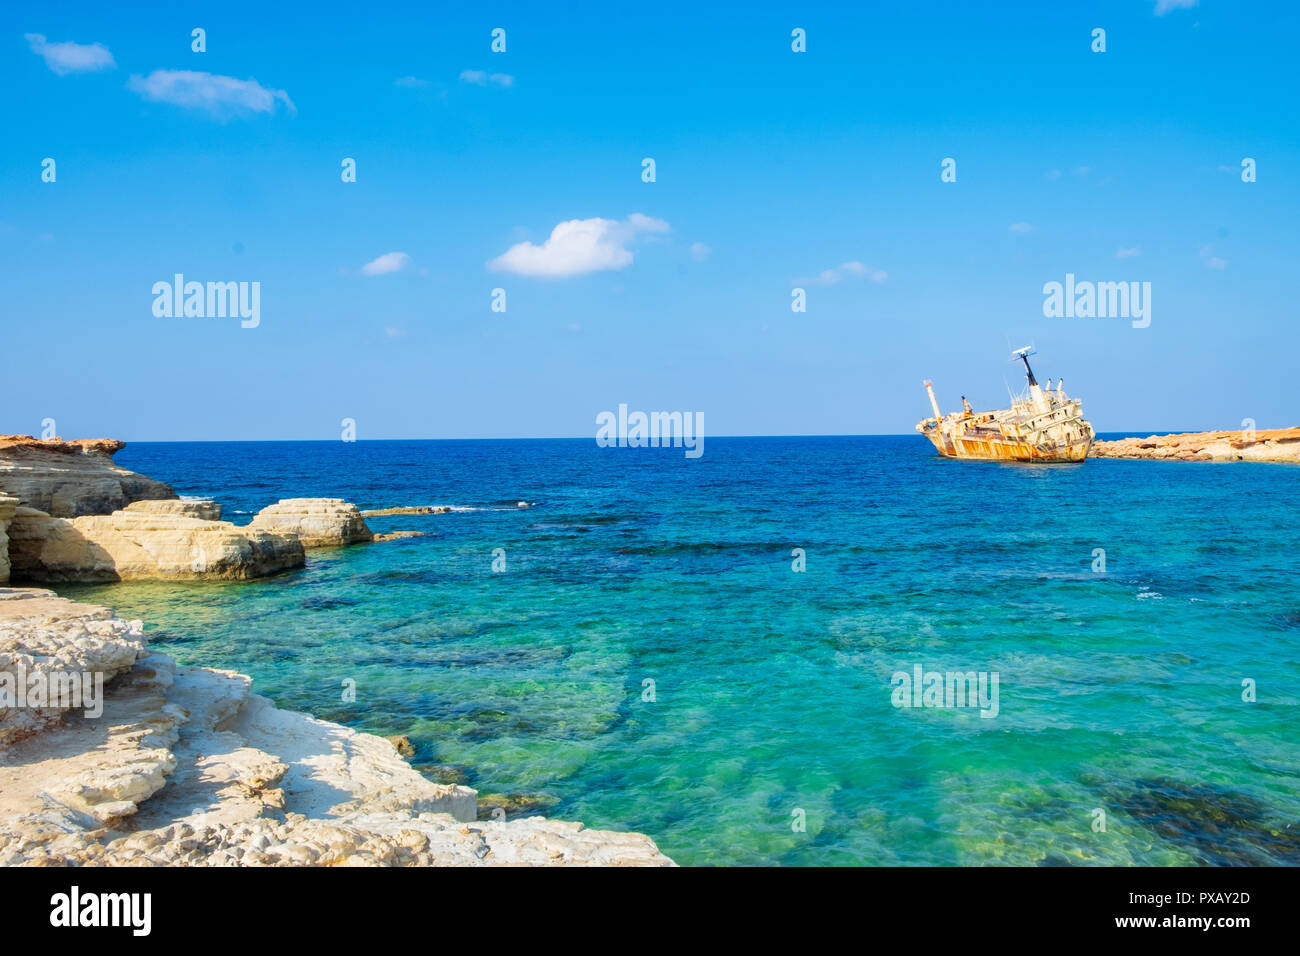 Abandoned rusty ship wreck EDRO III in Pegeia, Paphos, Cyprus. It is stranded on Peyia rocks at kantarkastoi sea caves, Coral Bay, Pafos, standing at  - Stock Image